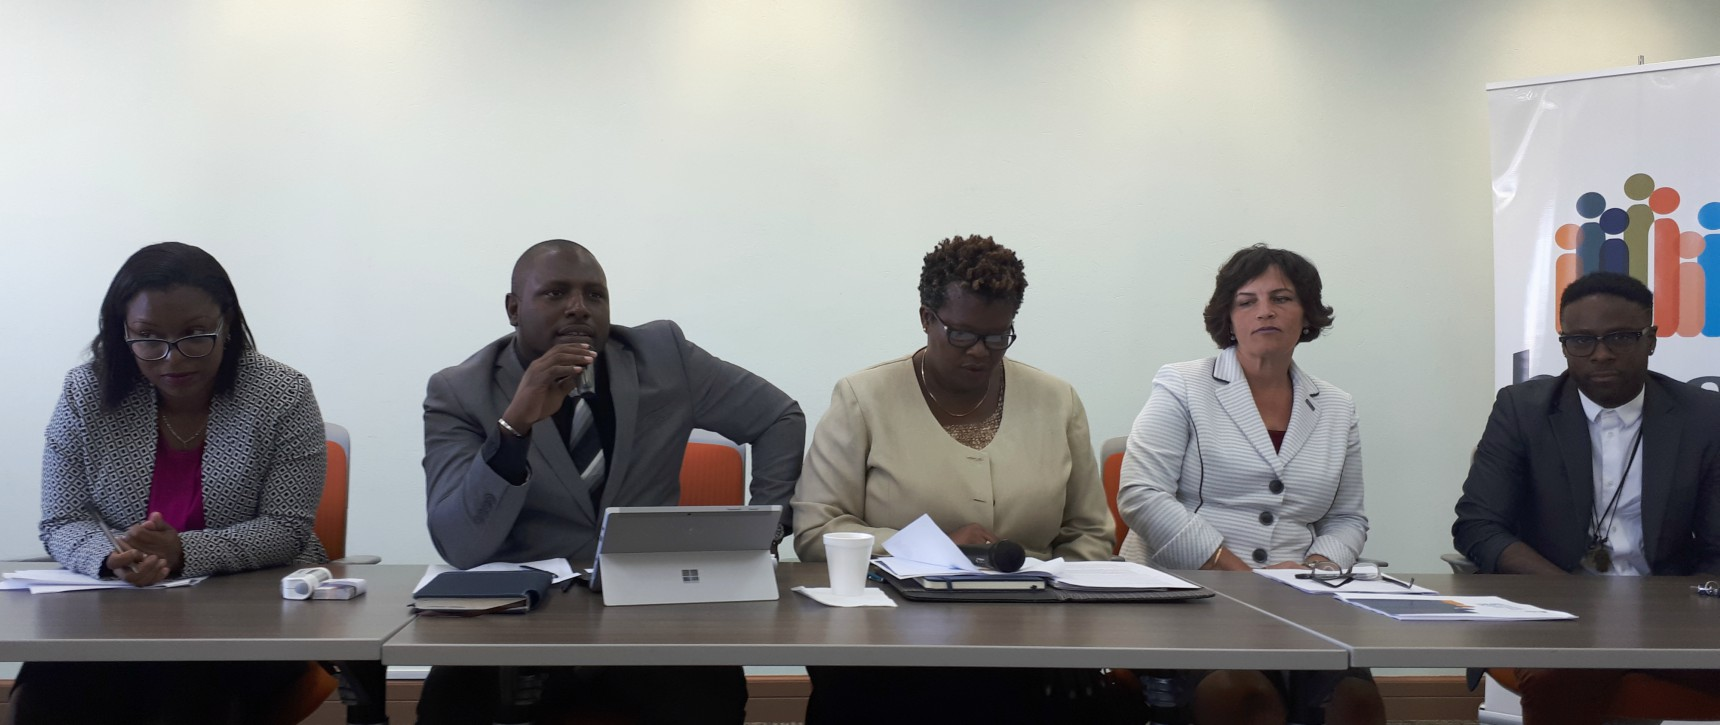 (L-R) Director of Clinical Services, Shanae Gill; Executive Director, Anderson Langdon; President, Ruth Phillips; Chief Financial Officer, Sonya Alleyne; Ambassador, Kirk Brown.